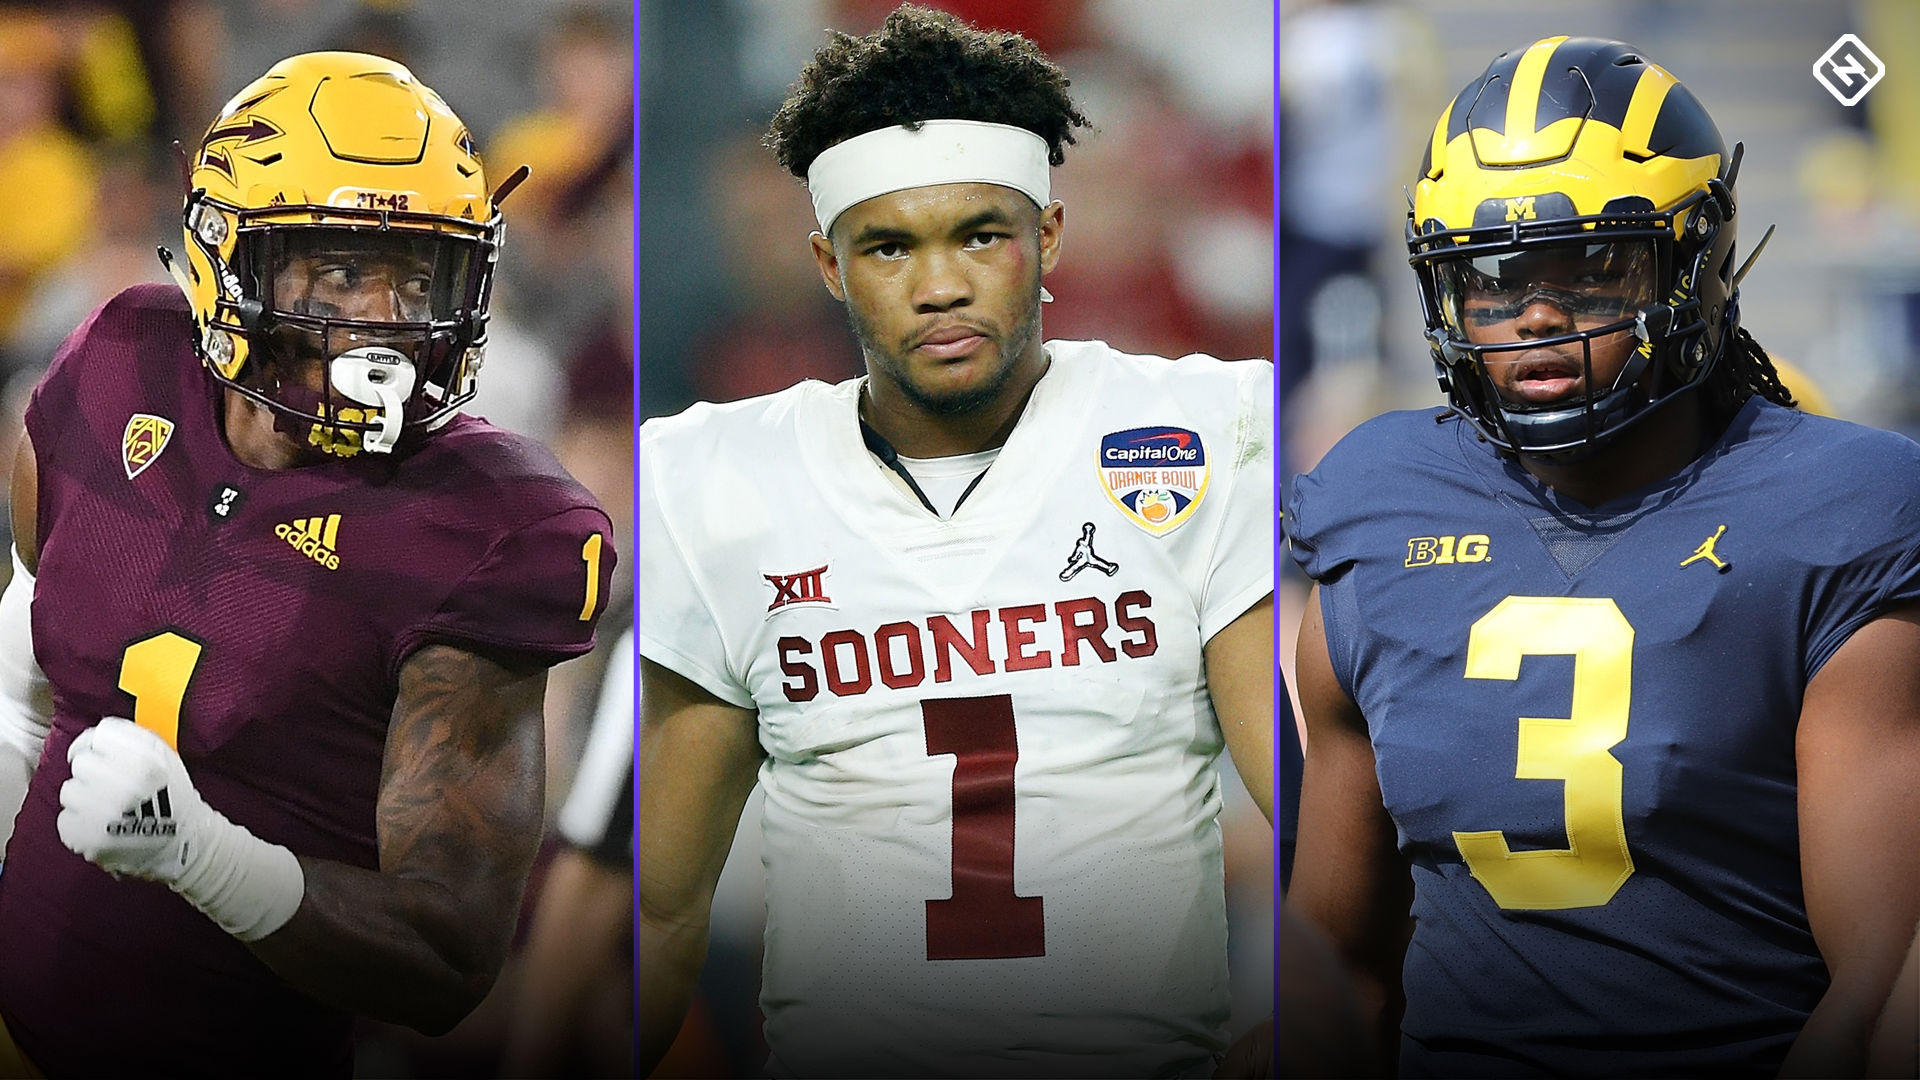 Best Prospects Nfl Draft 2019 2019 NFL Draft prospects: Big board of top 100 players | Sporting News